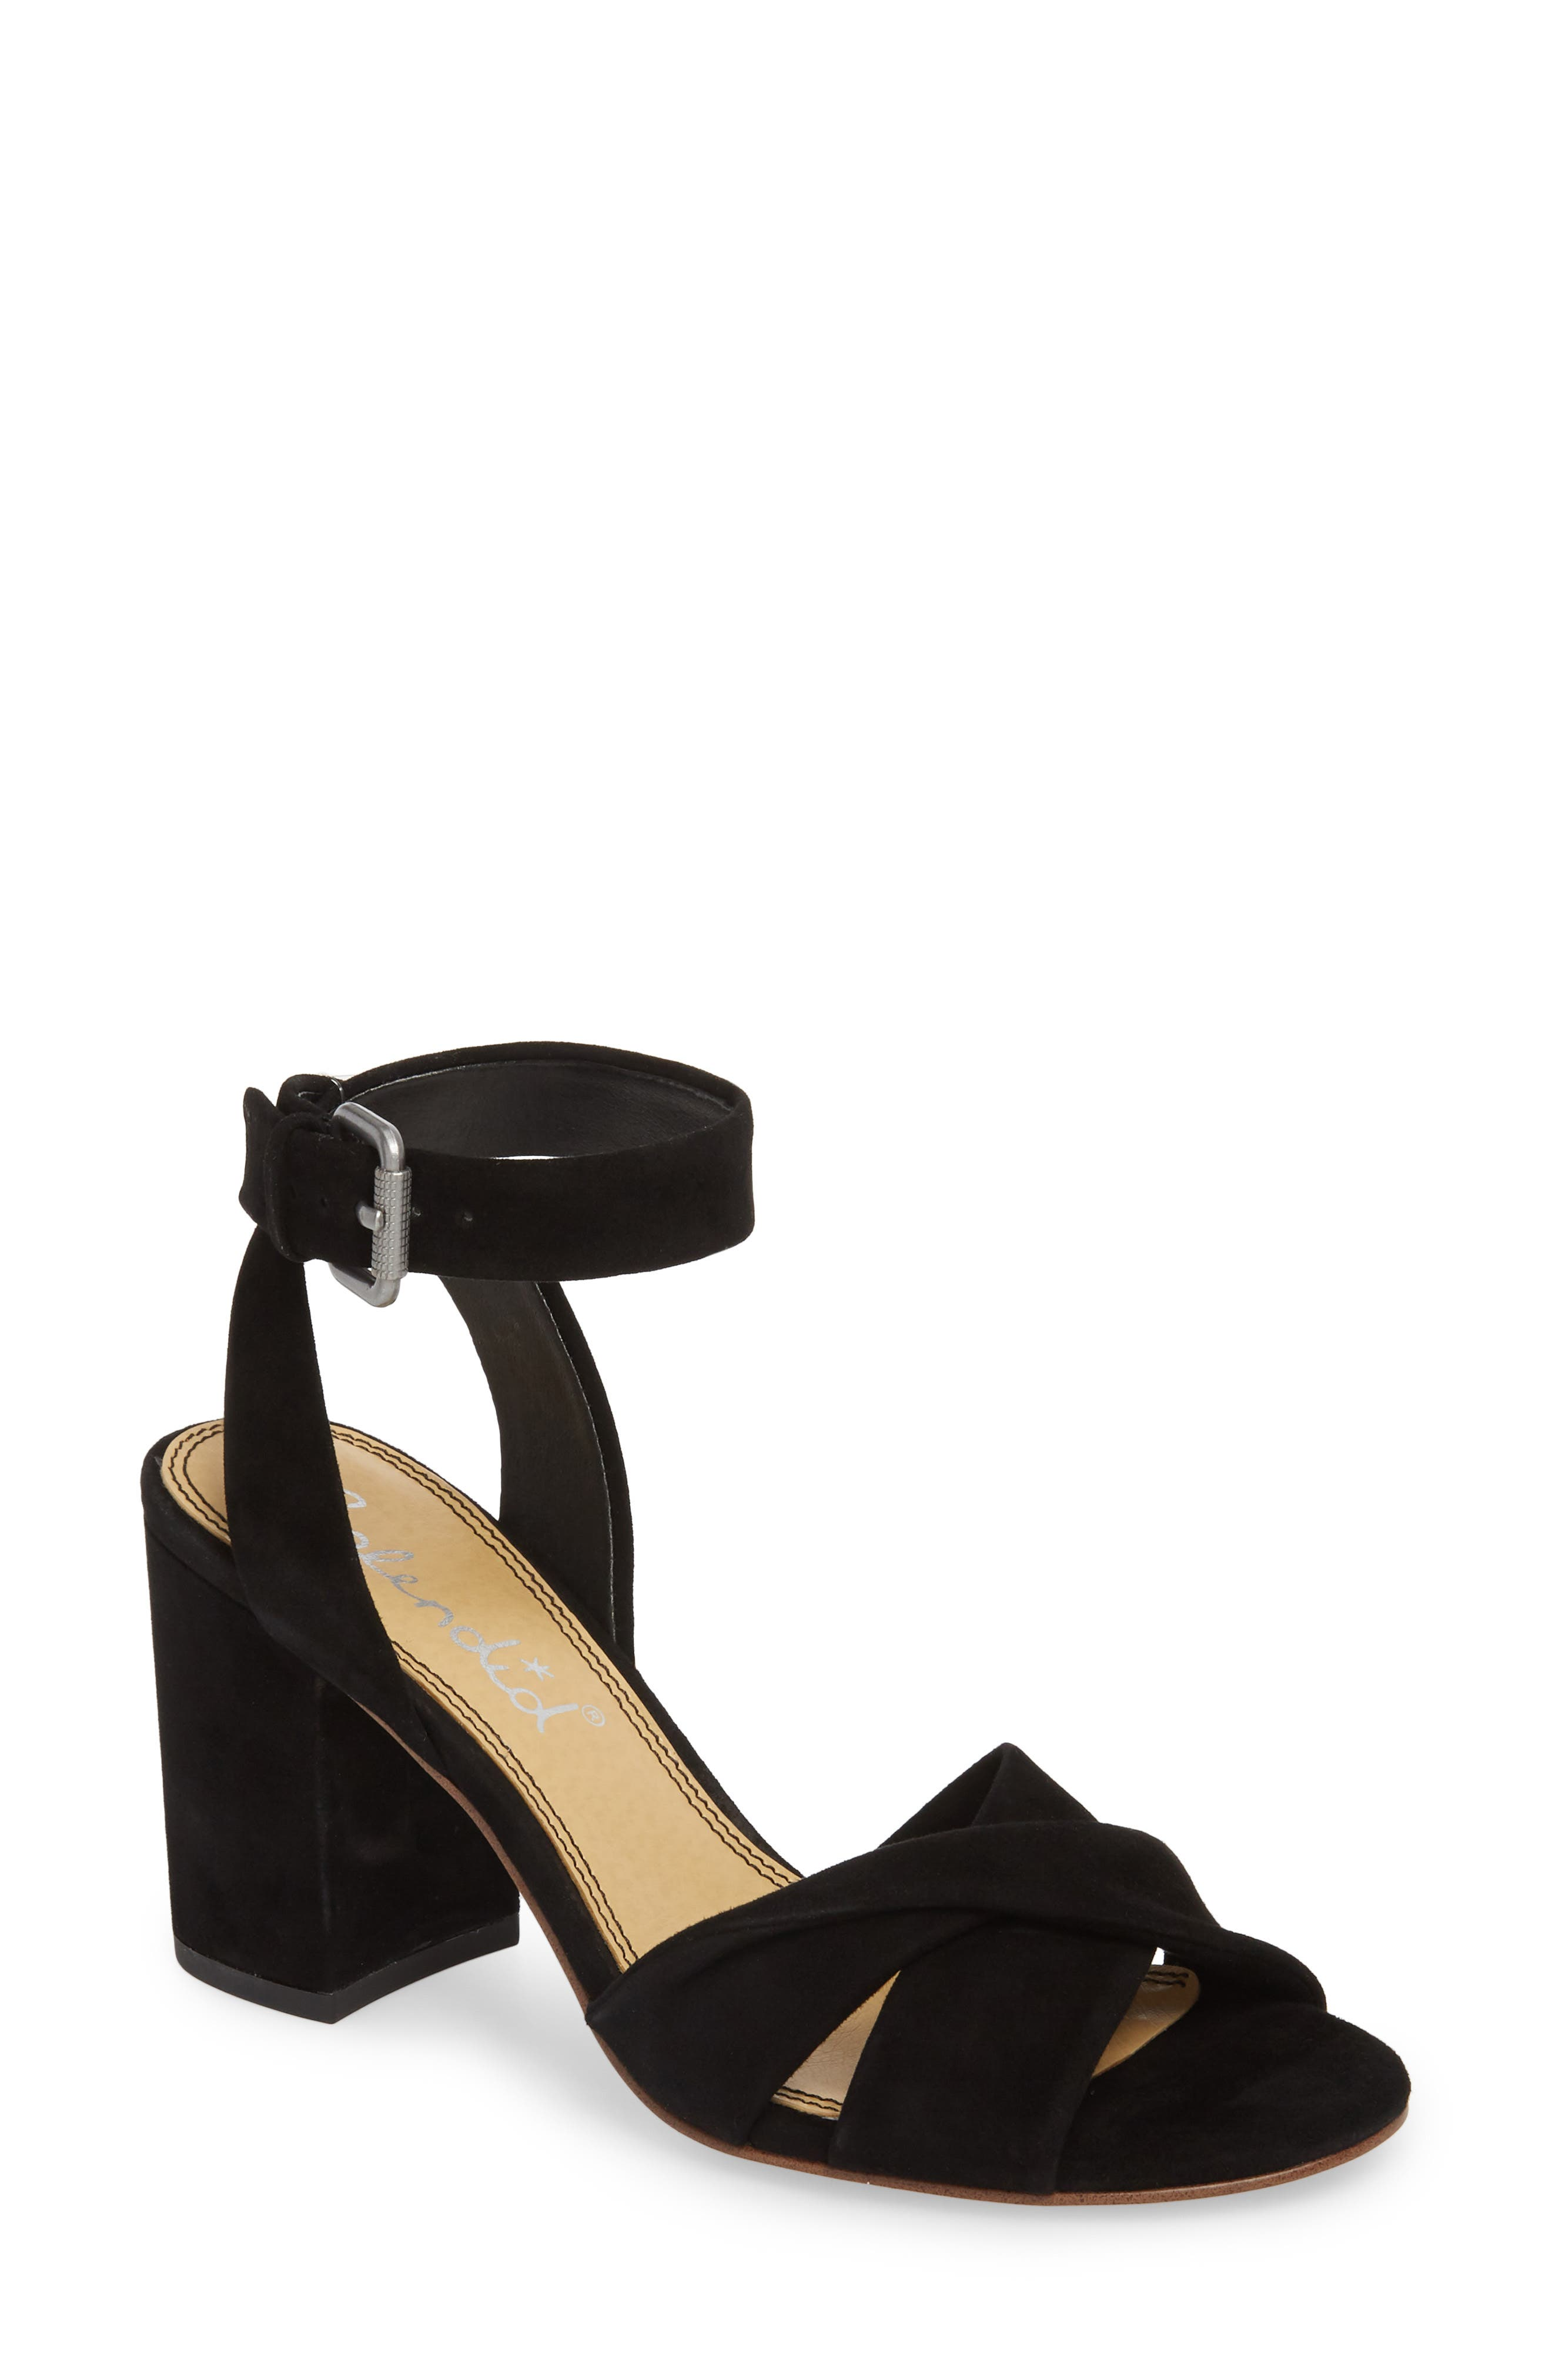 Fairy Block Heel Sandal,                             Main thumbnail 1, color,                             BLACK SUEDE